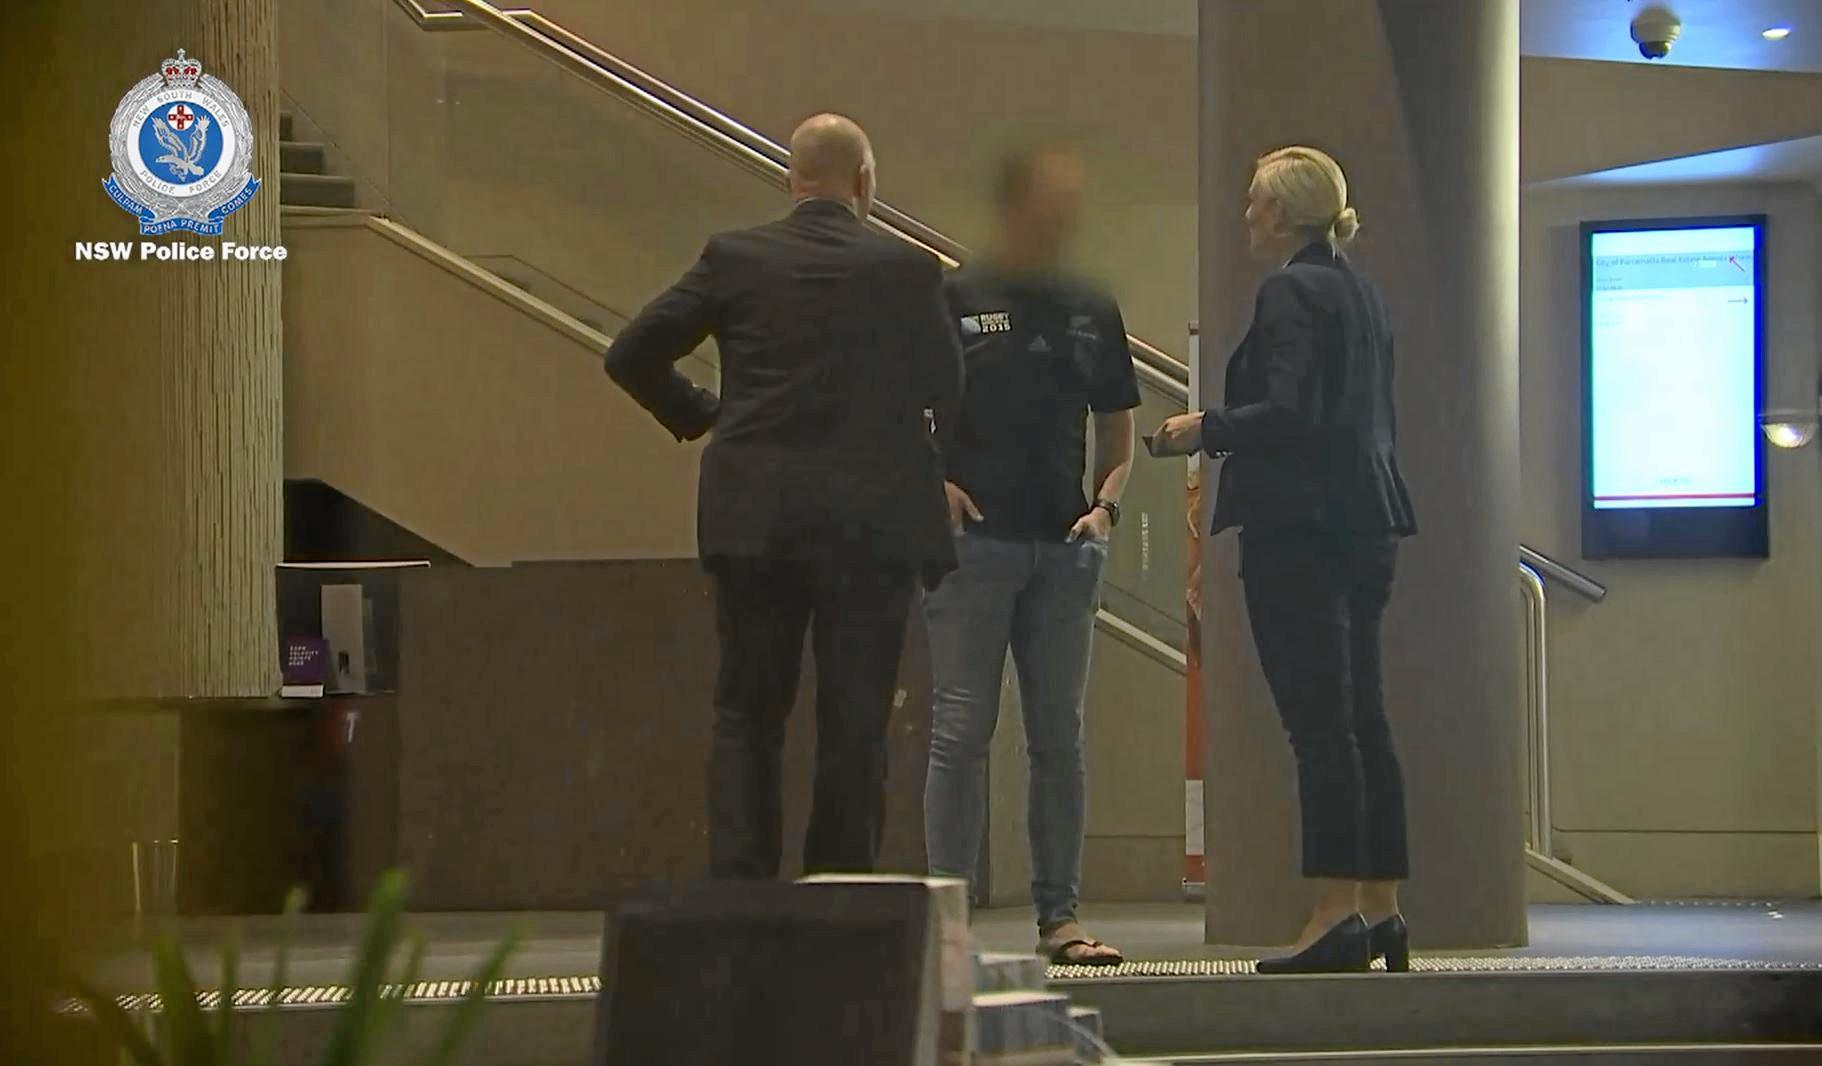 Strike force detectives arrested a 49-year-old Coffs Harbour man outside a hotel at Parramatta on Wednesday about 7.30pm.